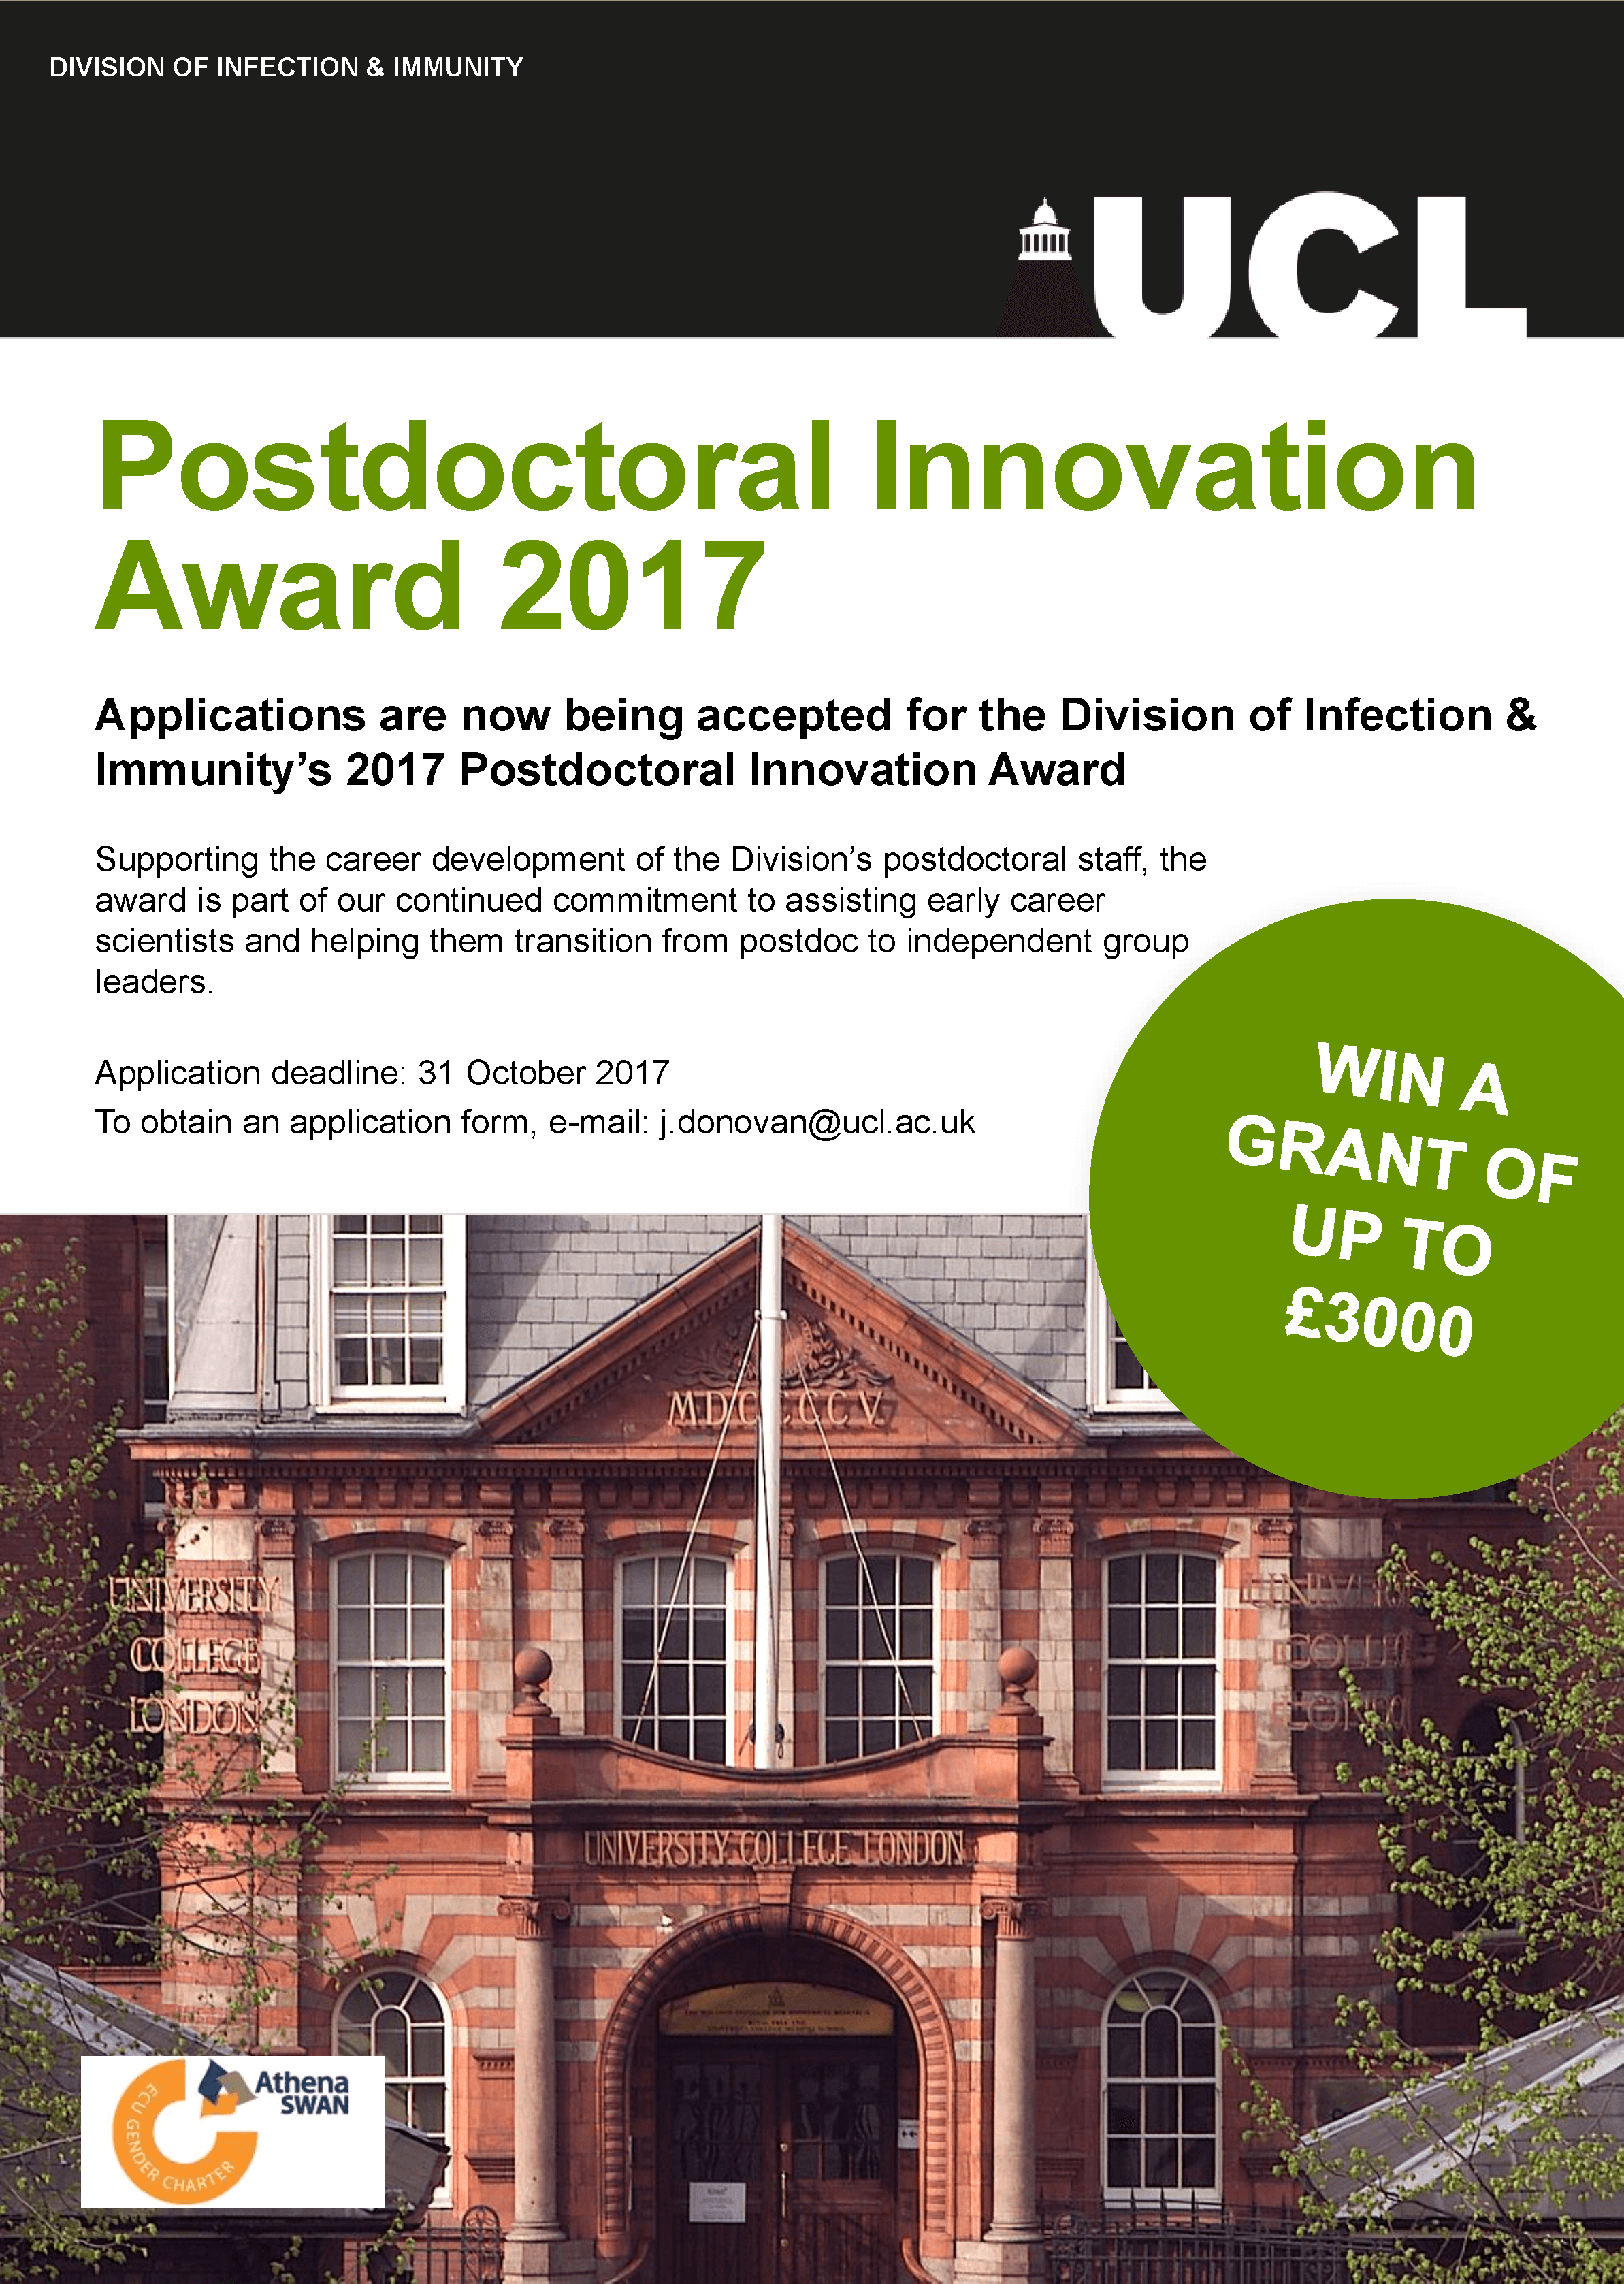 Postdoctoral Innovation Award 2017 | UCL Infection and Immunity